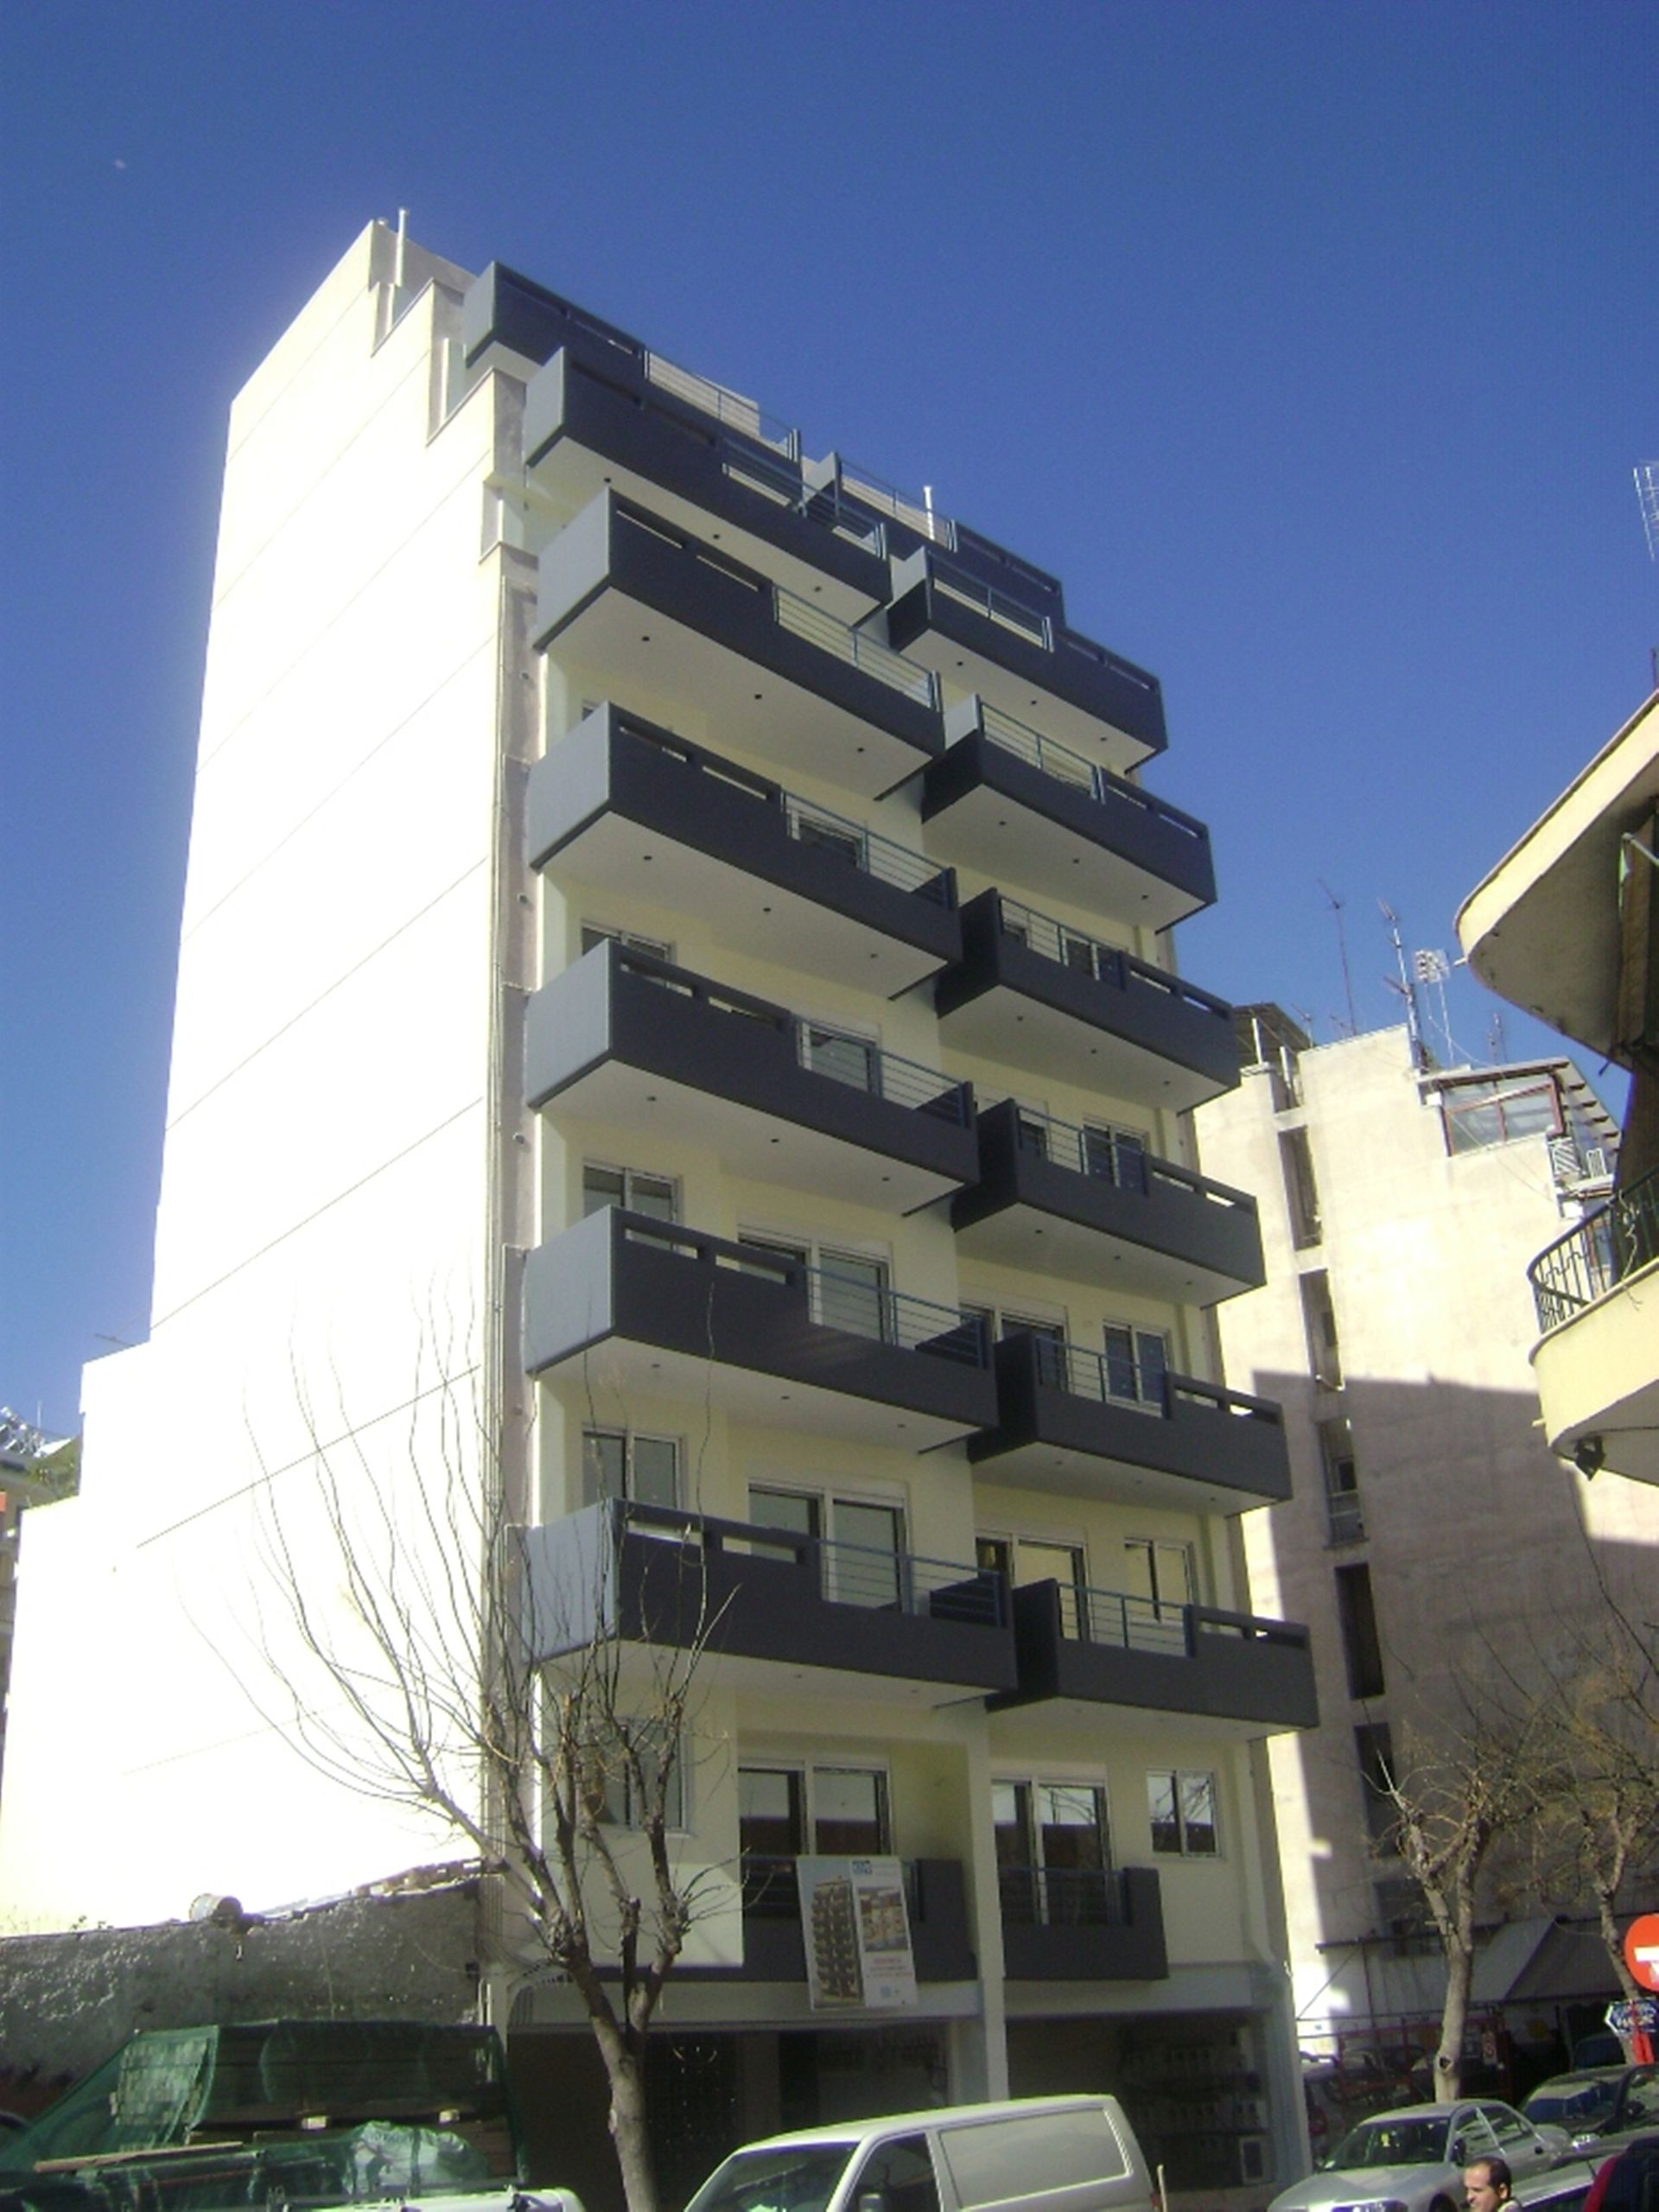 Elvita Apartments 2 Athens - Αθήνα ? 2 Ημέρες (1 Διανυκτέρευση) ? 2 άτομα ? Χωρίς Πρωινό ? έως 30/04/2020 ? Free WiFi